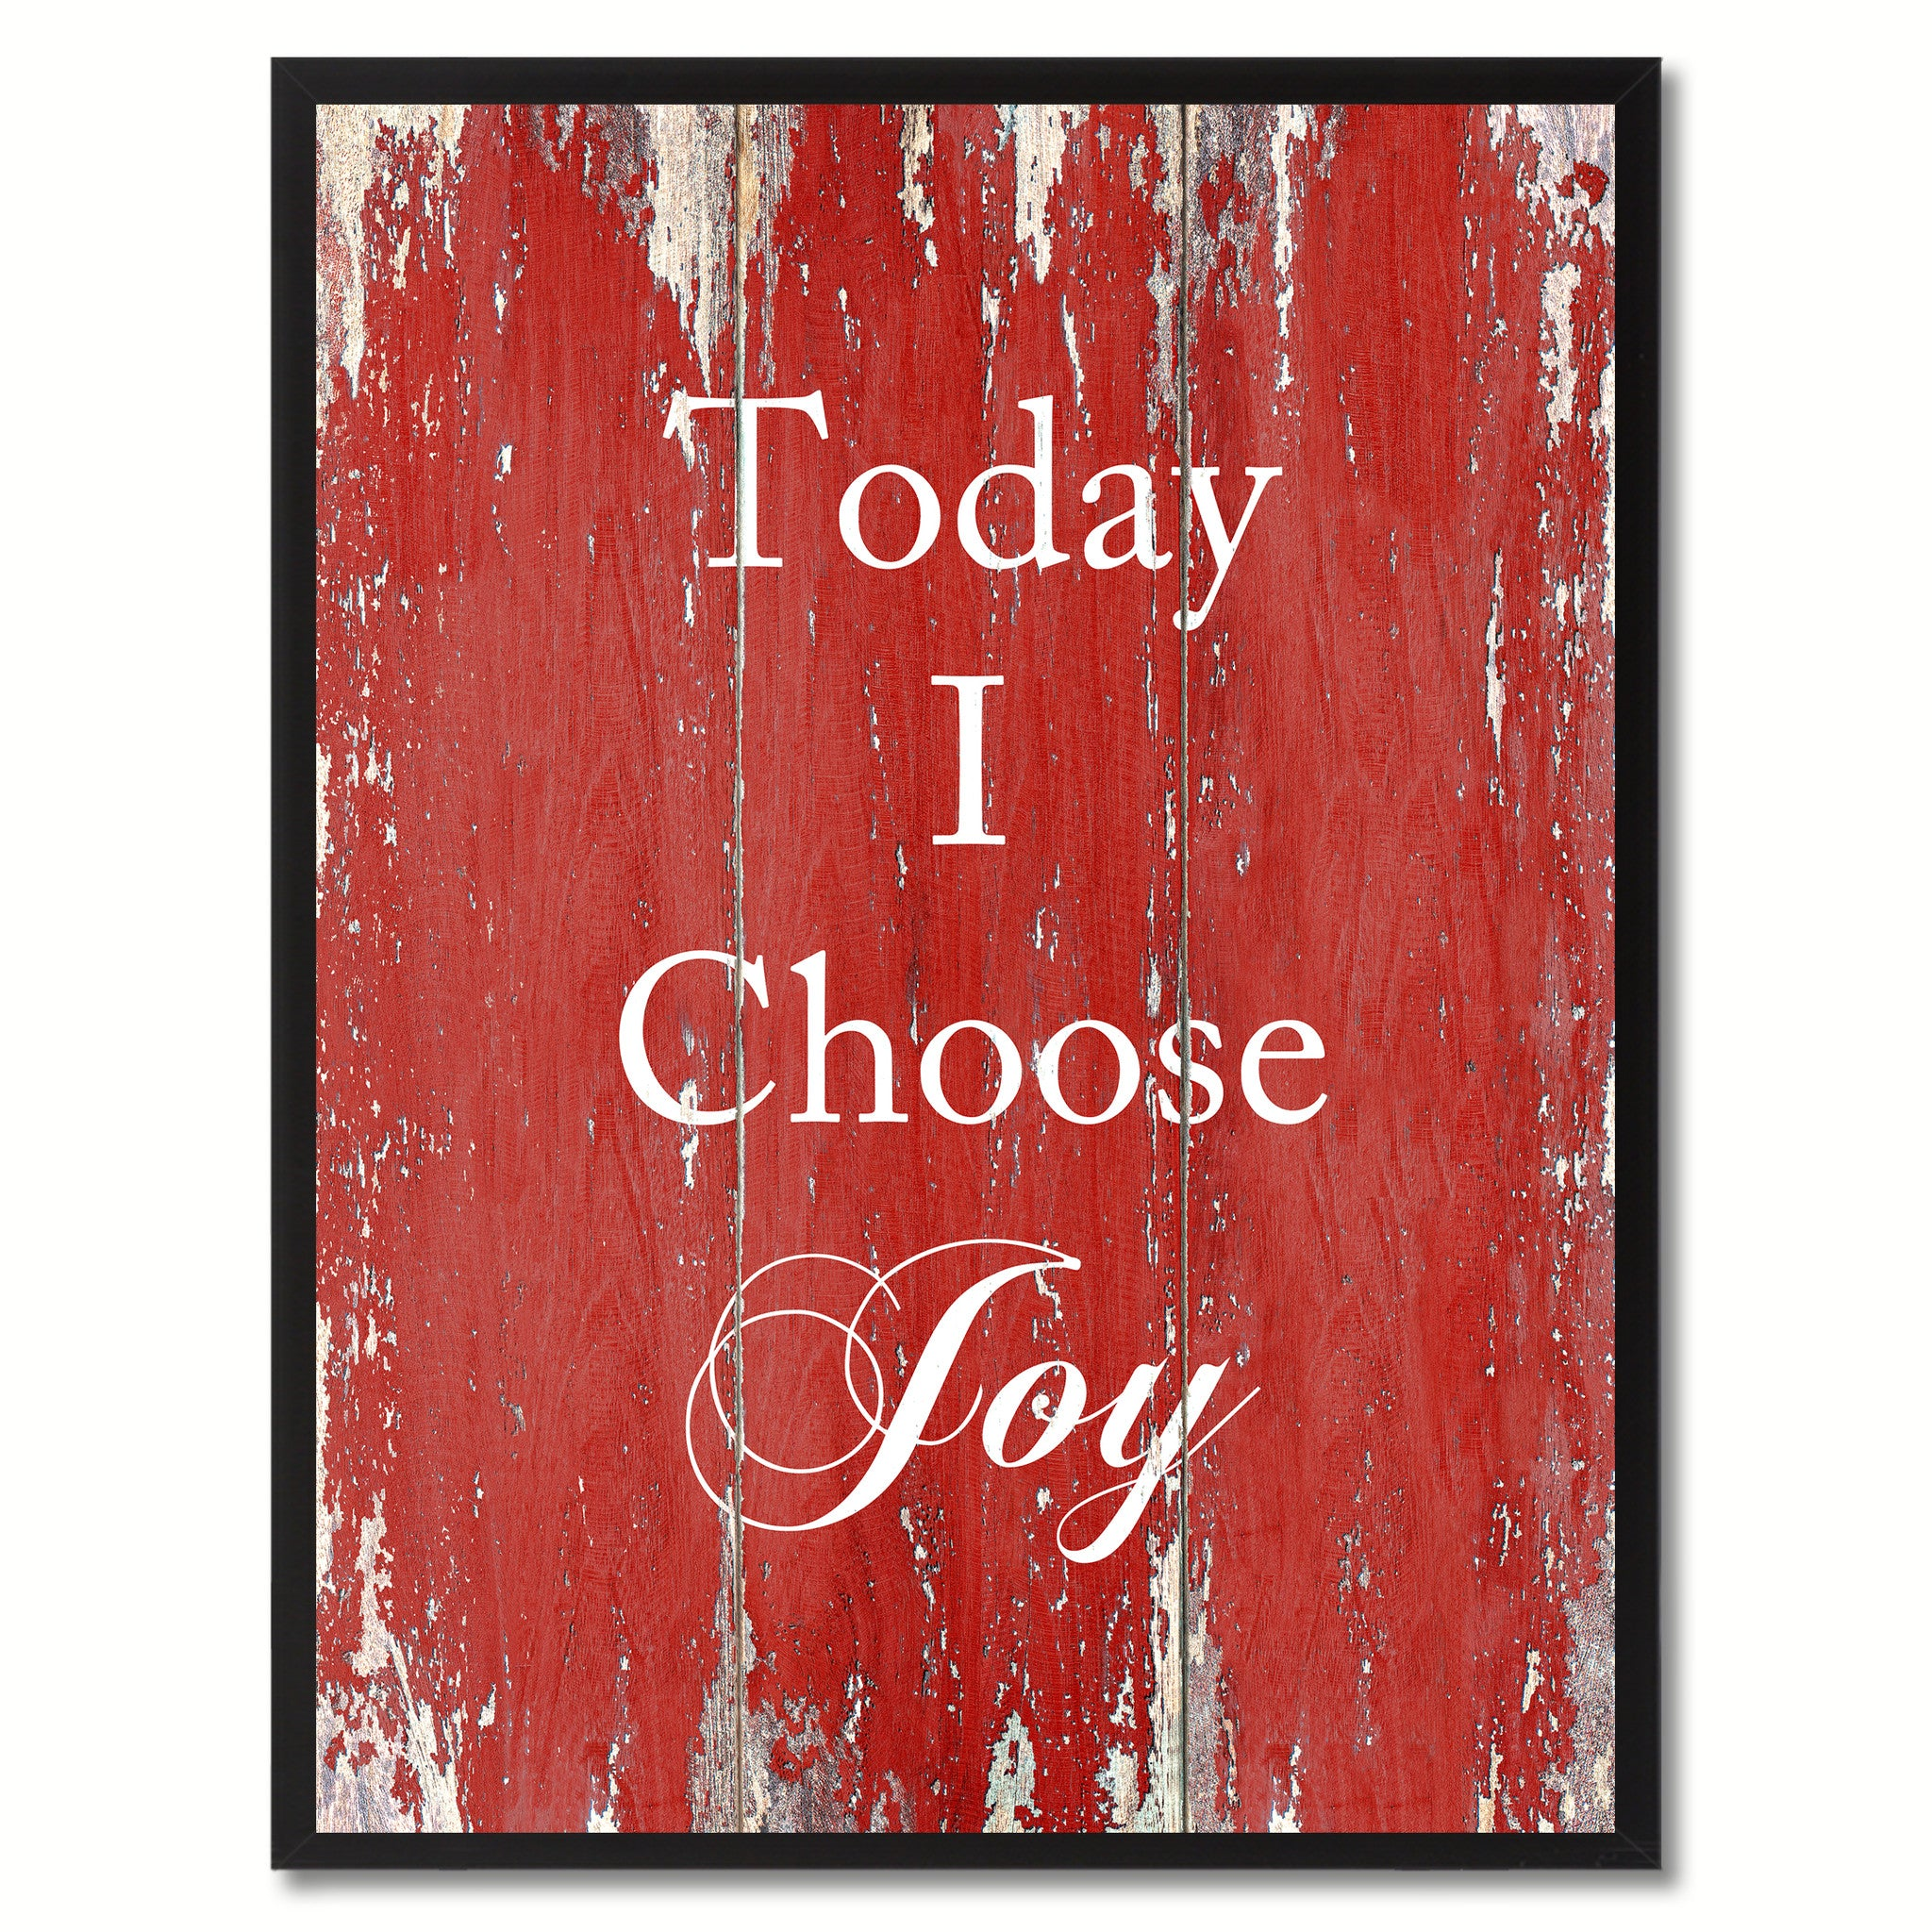 Today I Choose Joy Saying Canvas Print, Black Picture Frame Home Decor Wall Art Gifts